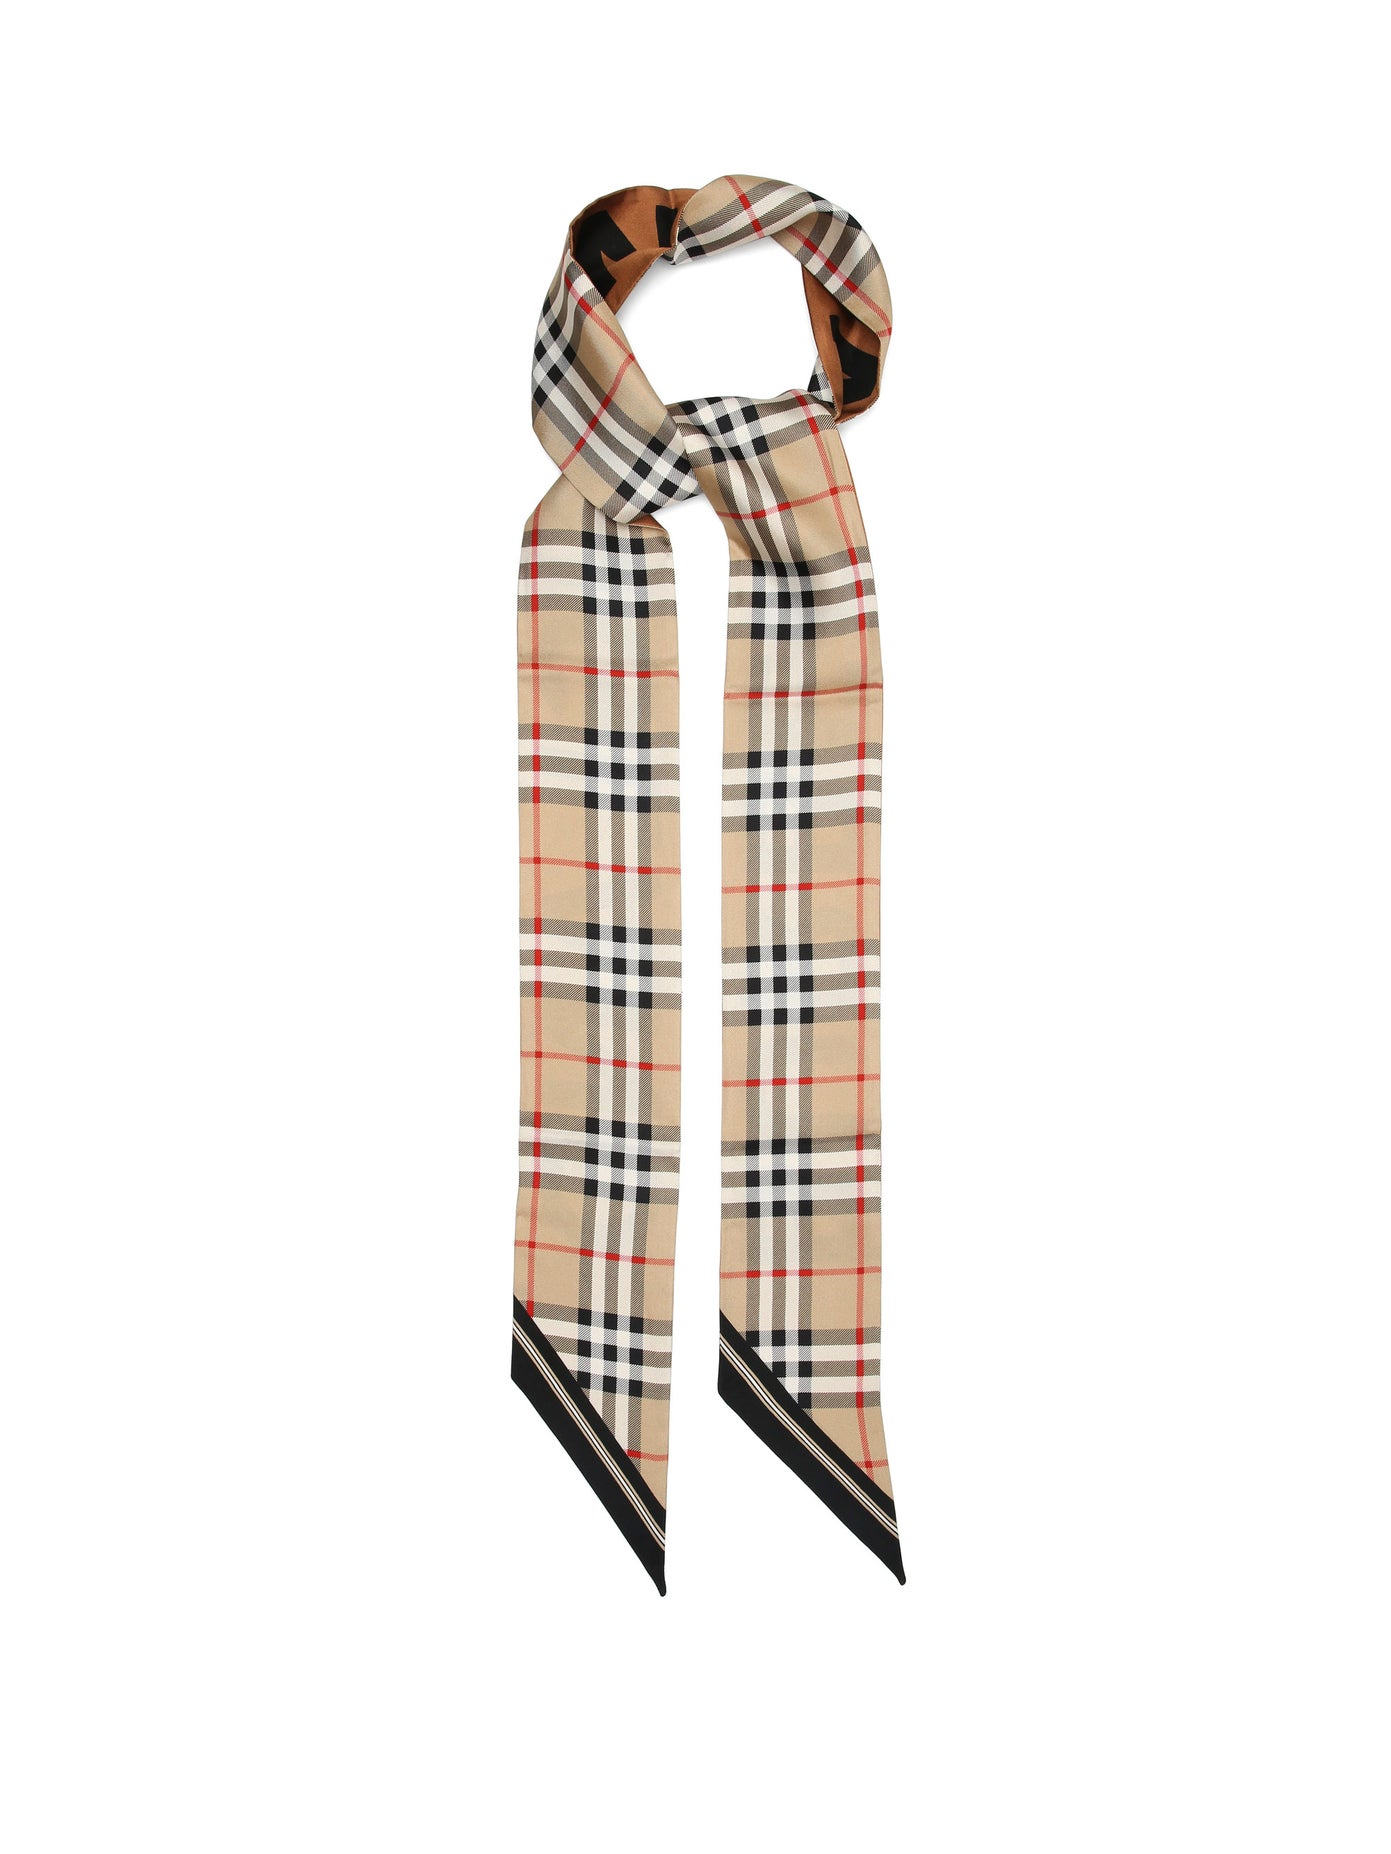 Burberry, Tapered-tip check silk-twill scarf, 333лв